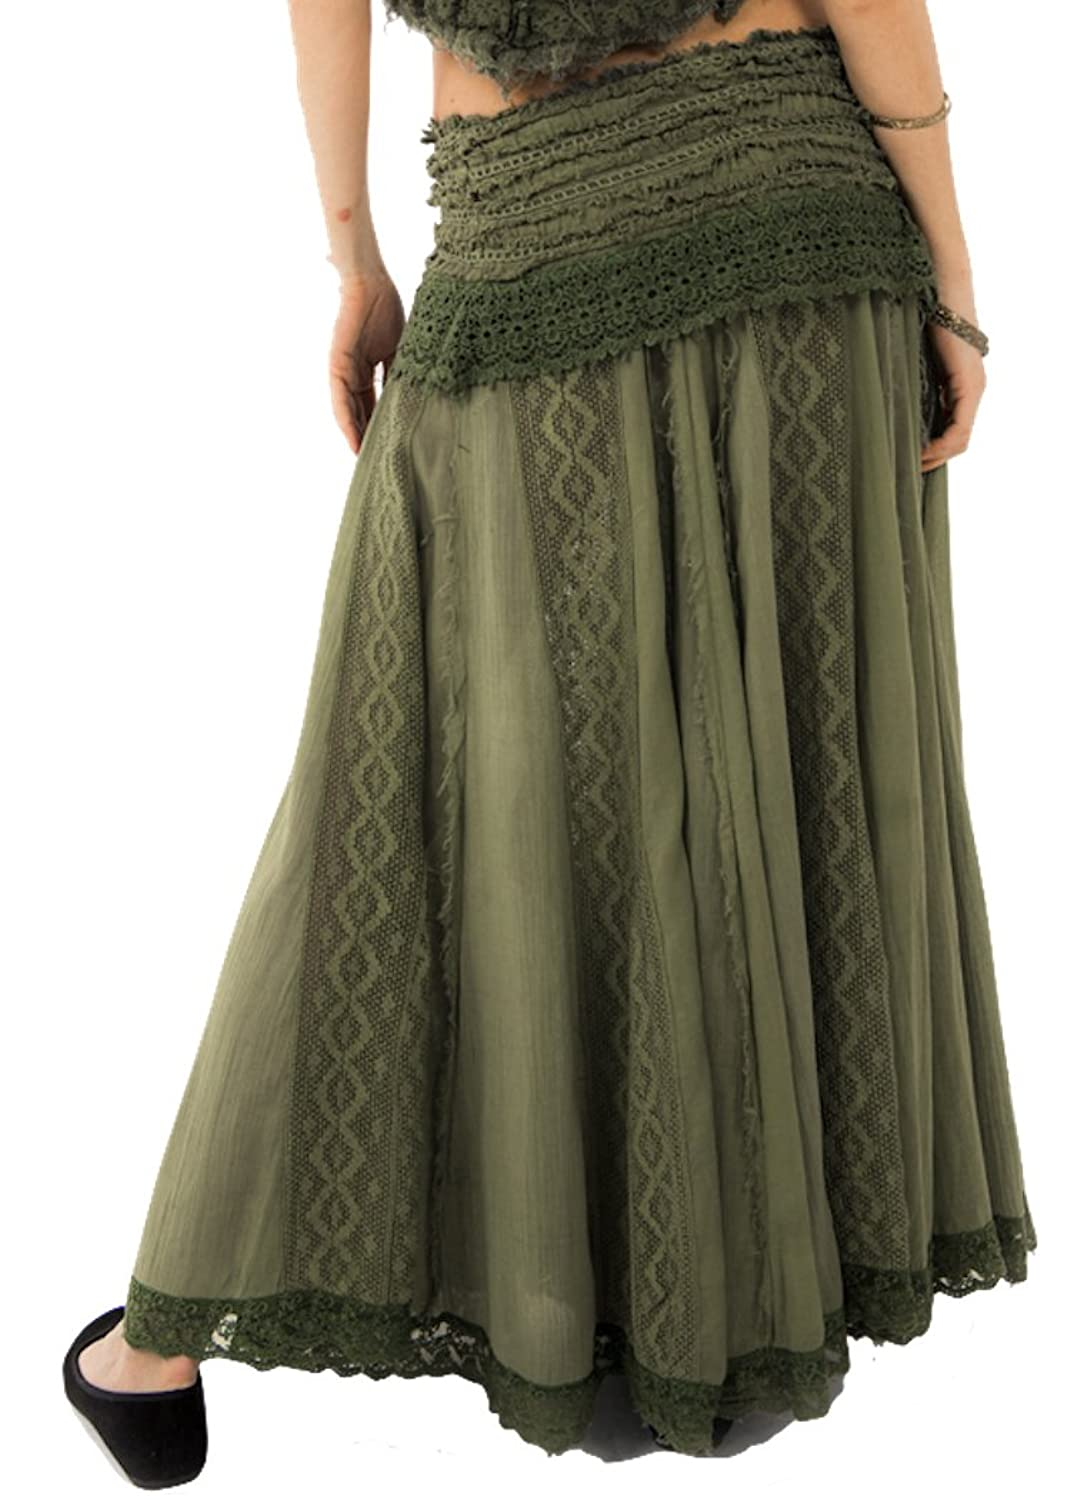 LONG SKIRT, FLAMENCO SKIRT, GYPSY SKIRT, GEKKO SKIRT